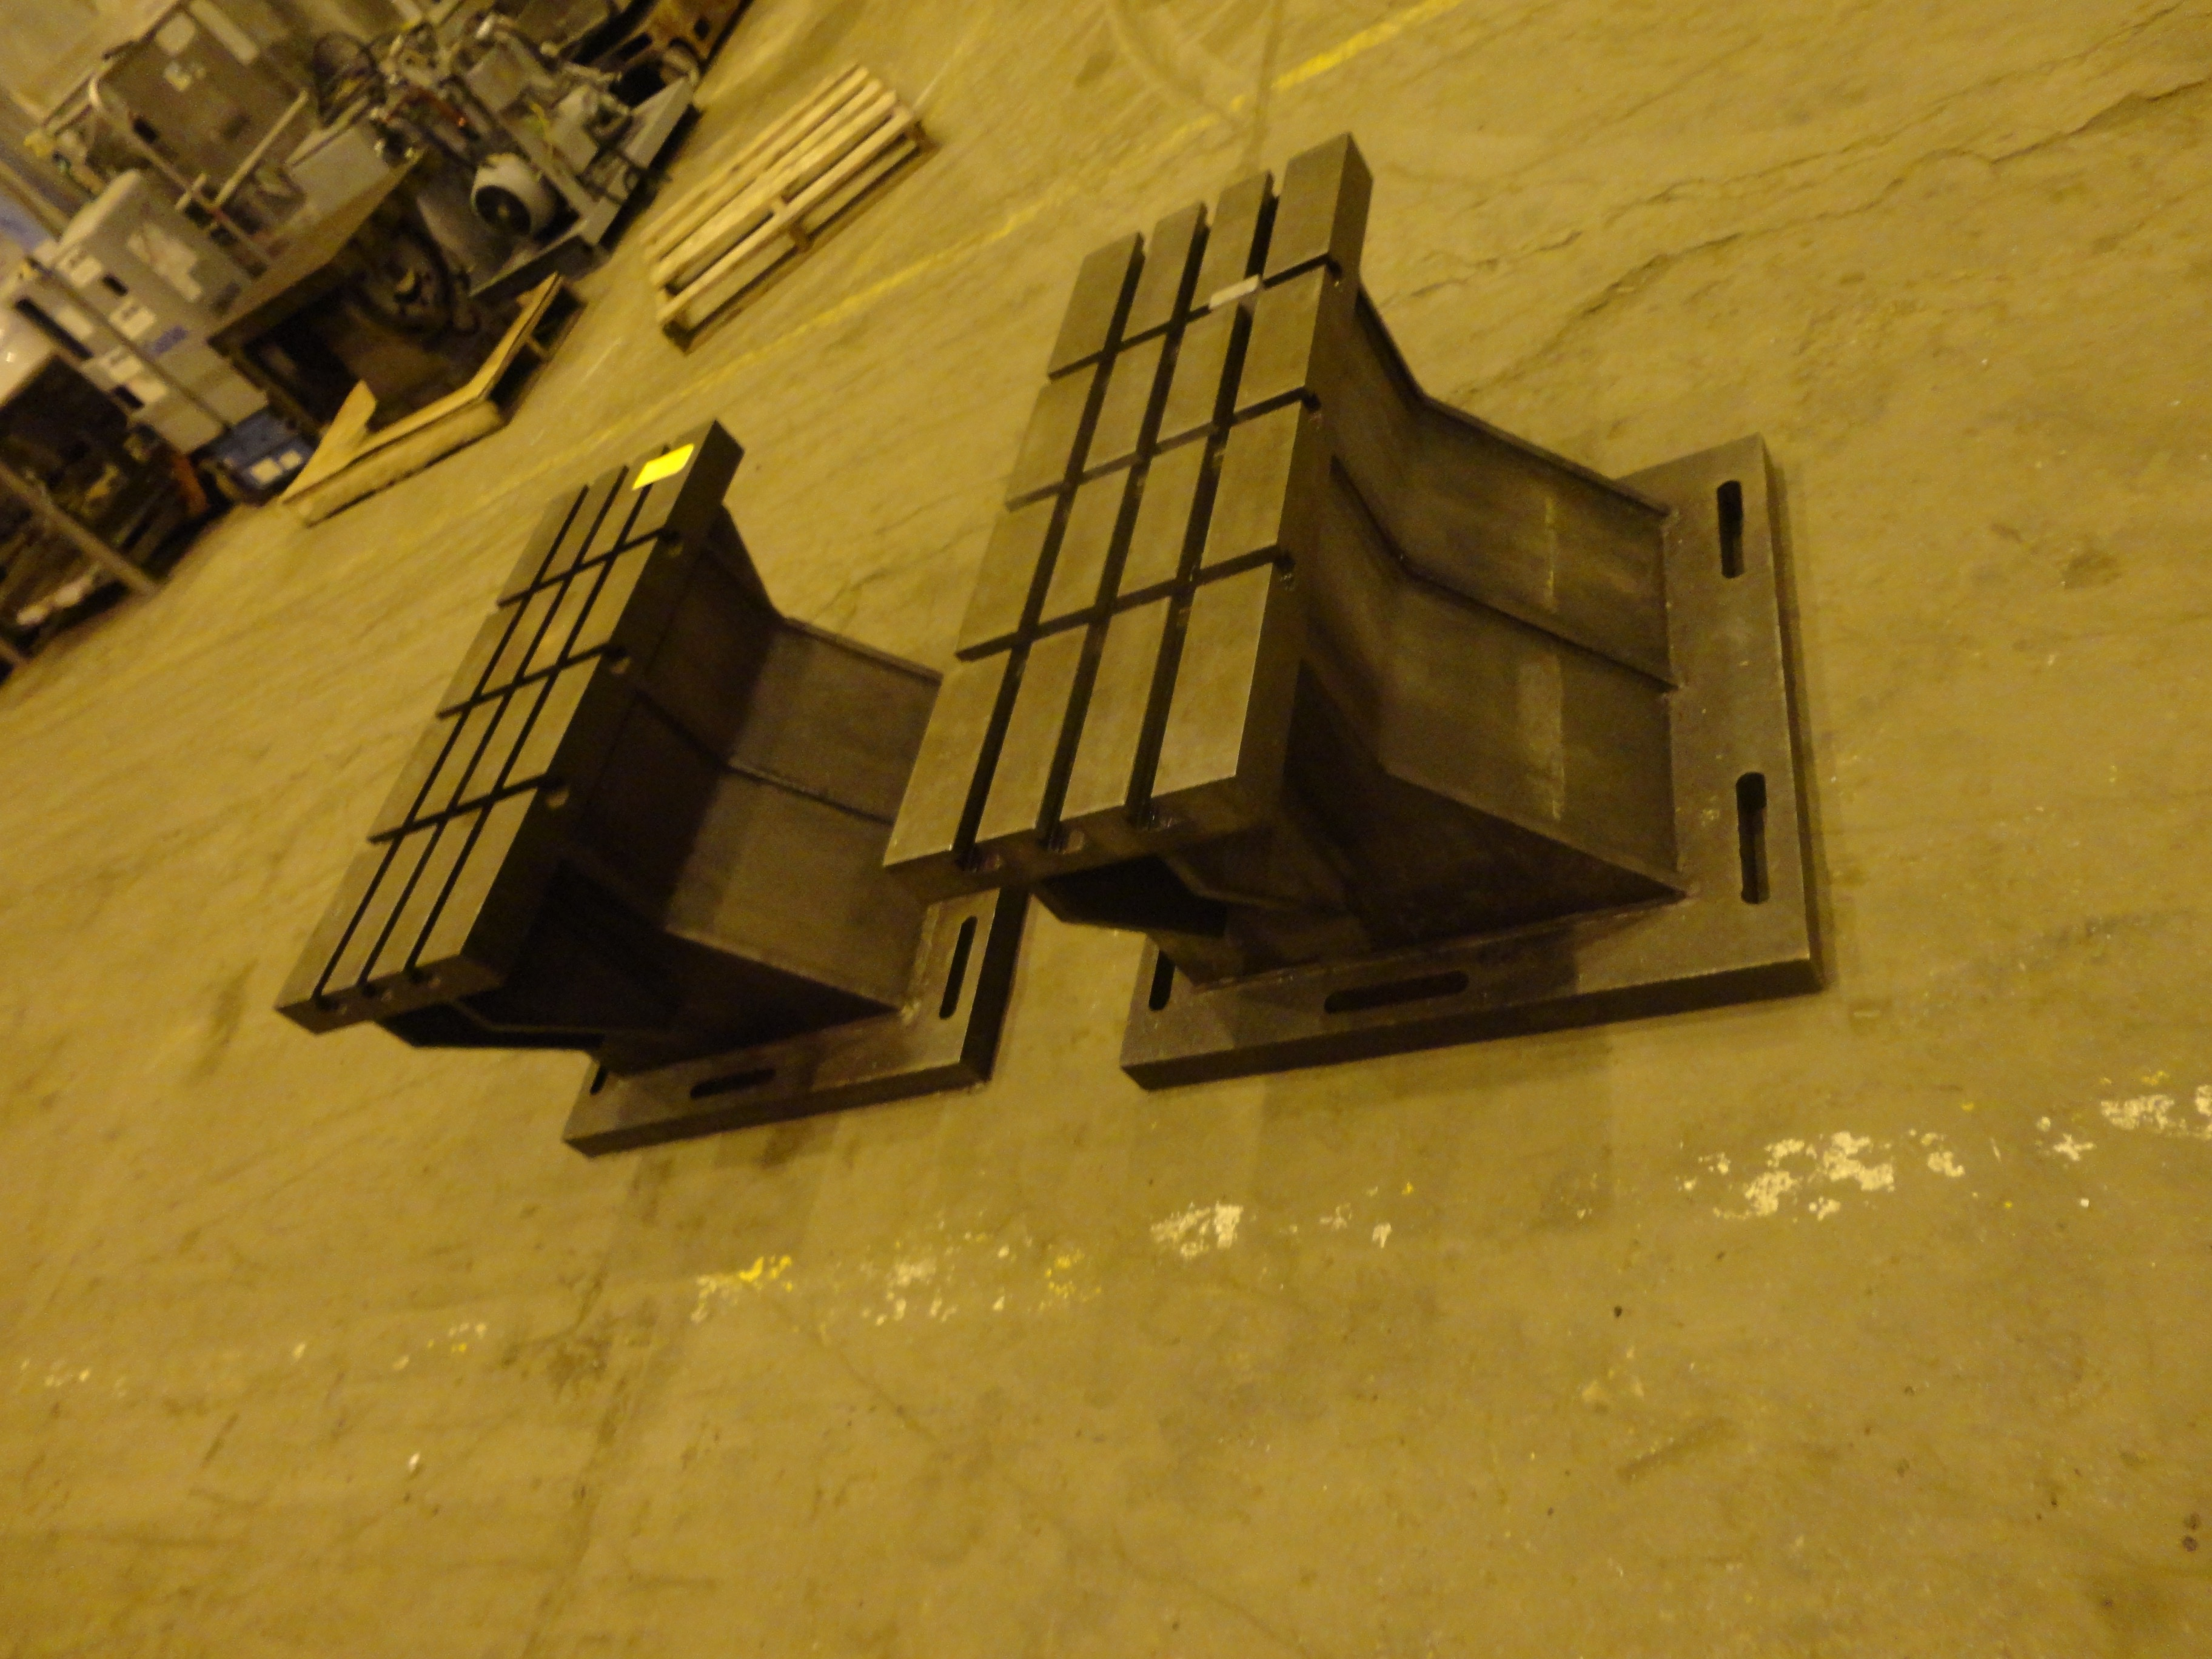 """Set of 2 T-Slotted Riser Blocks Knee Hold Down Plates 42""""L x 16"""" W x 25""""H - Image 7 of 13"""